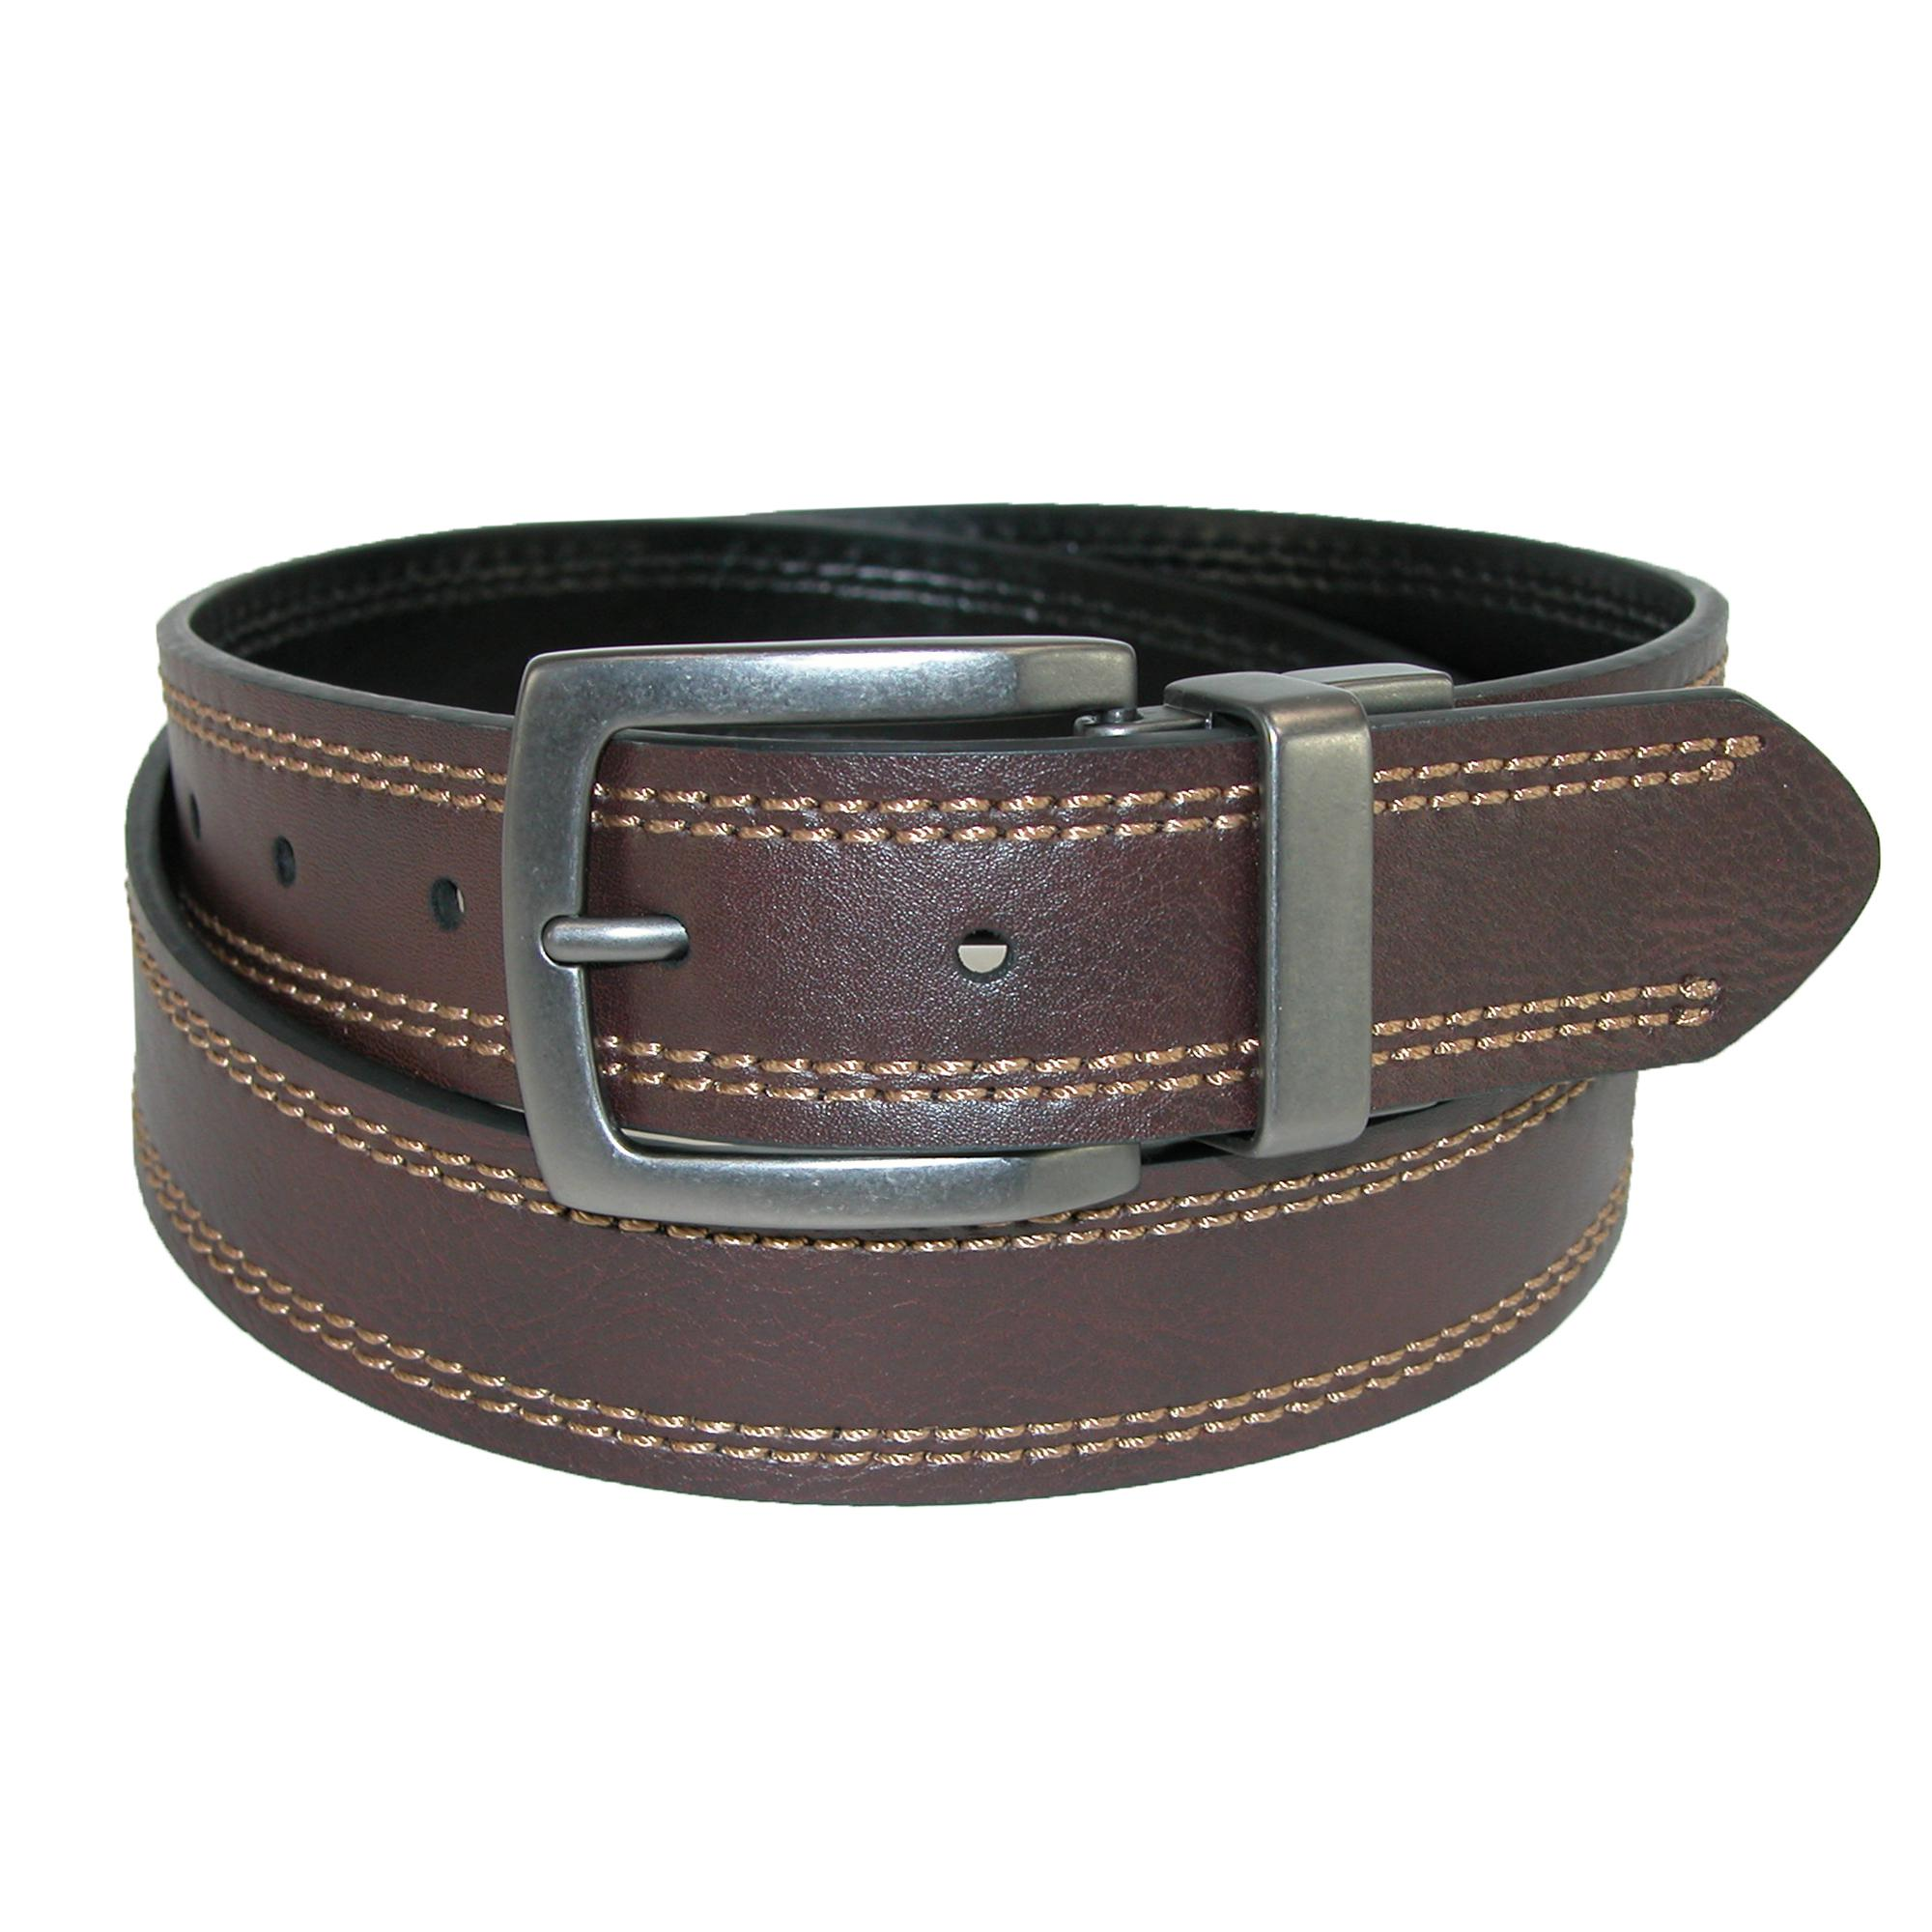 Dickies Mens 35mm Reversible Belt With Contrast Stitch